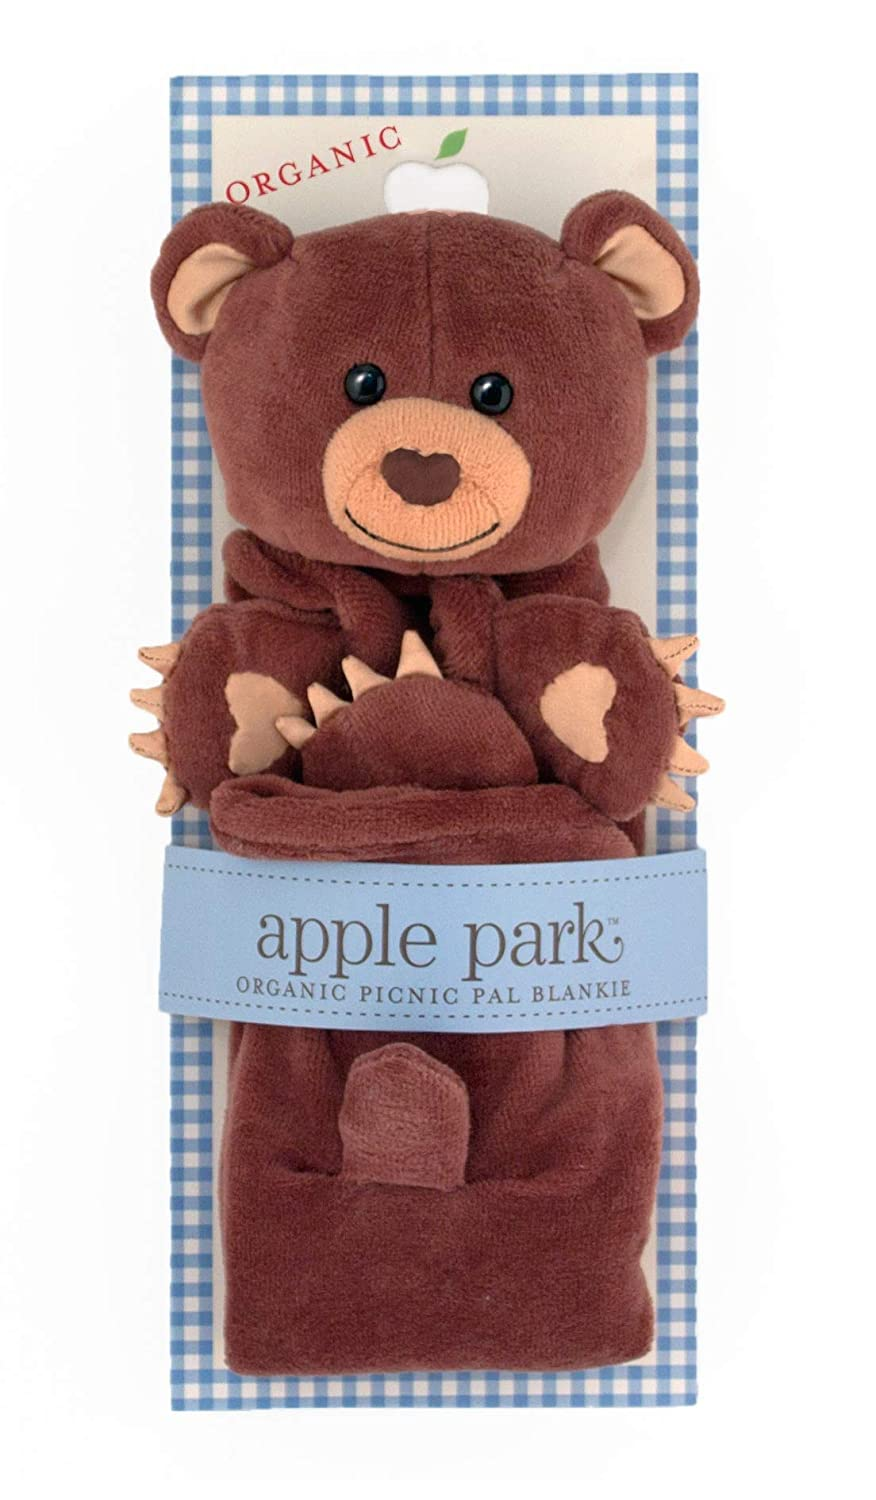 Apple Park Picnic Pals - Cubby Blankie, Blanket Baby Toy for Newborns, Infants, Toddlers - Hypoallergenic, 100% Organic Cotton